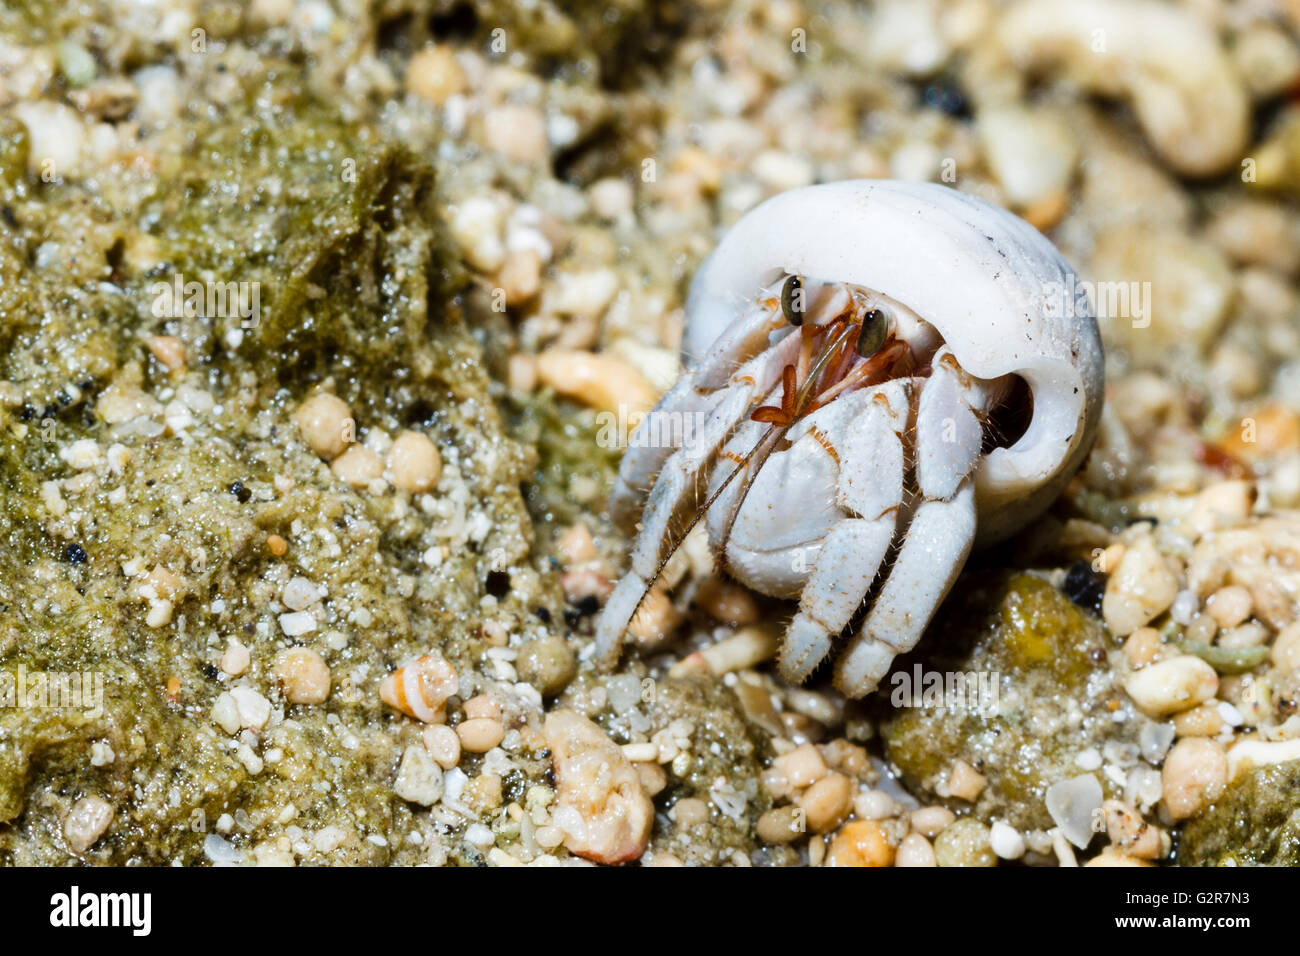 Hermit crab, Siladen, North Sulawesi, Indonesia. - Stock Image